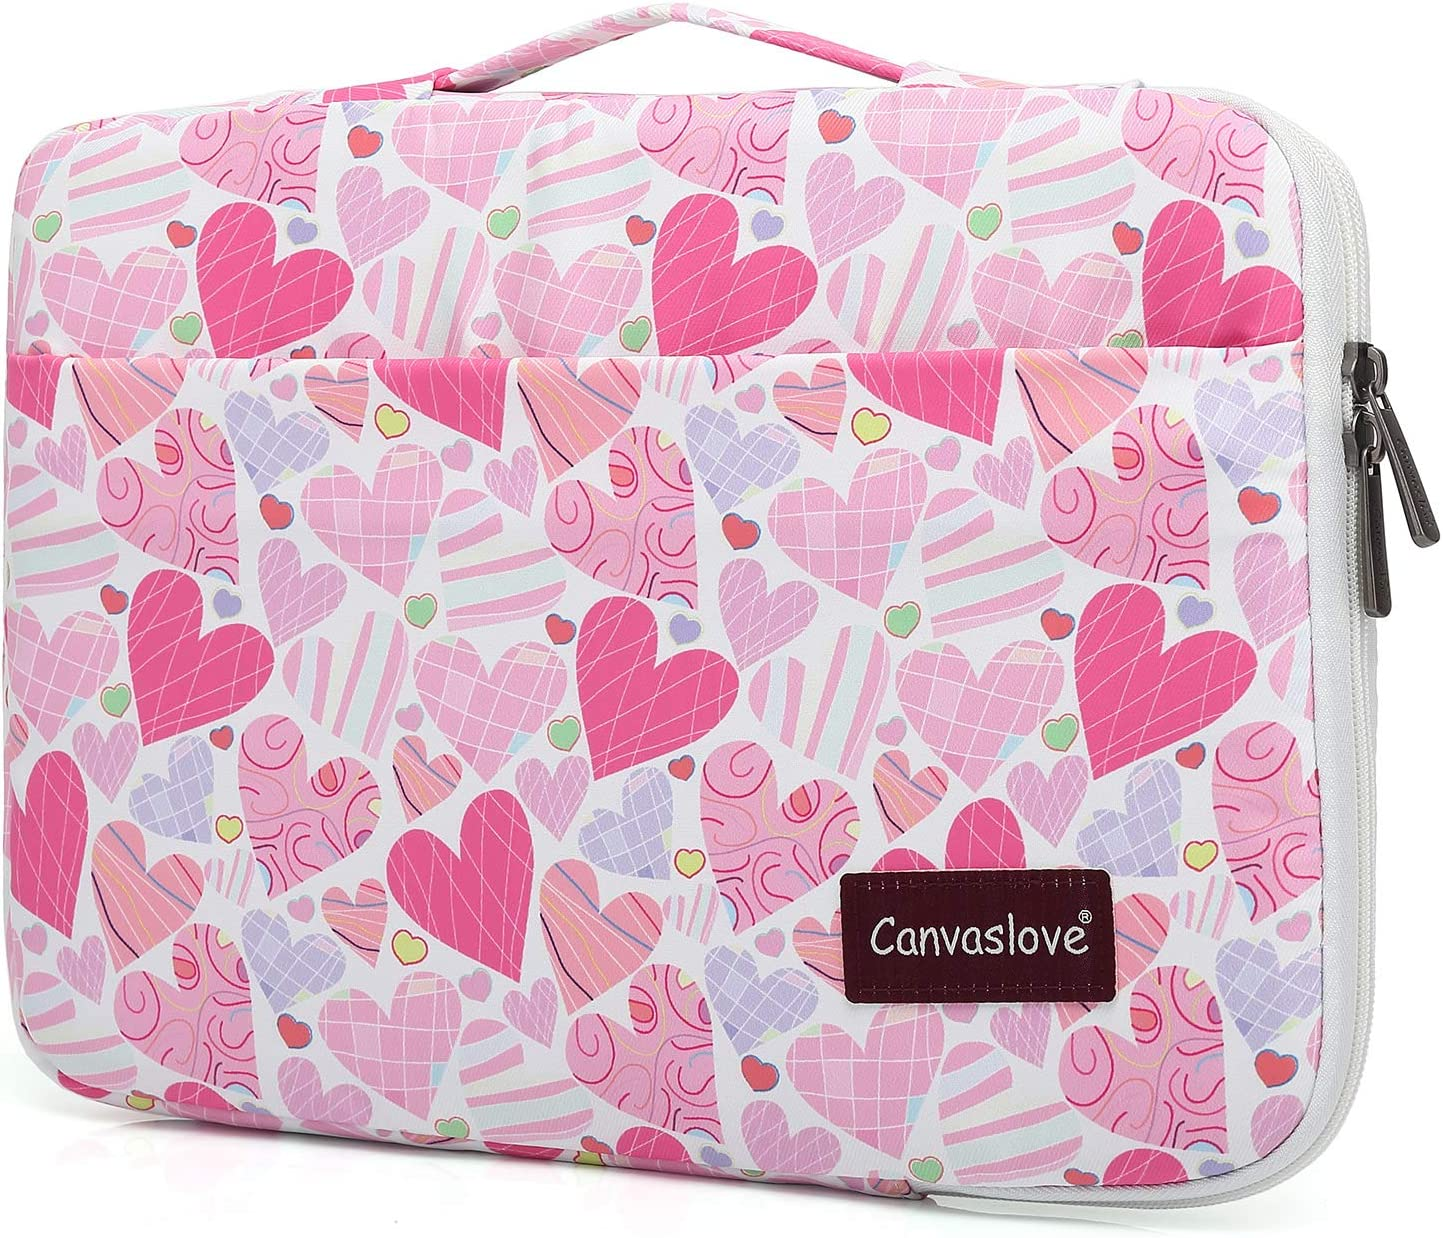 Canvaslove Loving Pattern Waterproof Corner and Bottom Rebound Bubble Cushioned Laptop Sleeve Case with Handle and Pockets for 15 Inch and 15.6 Inch Laptop